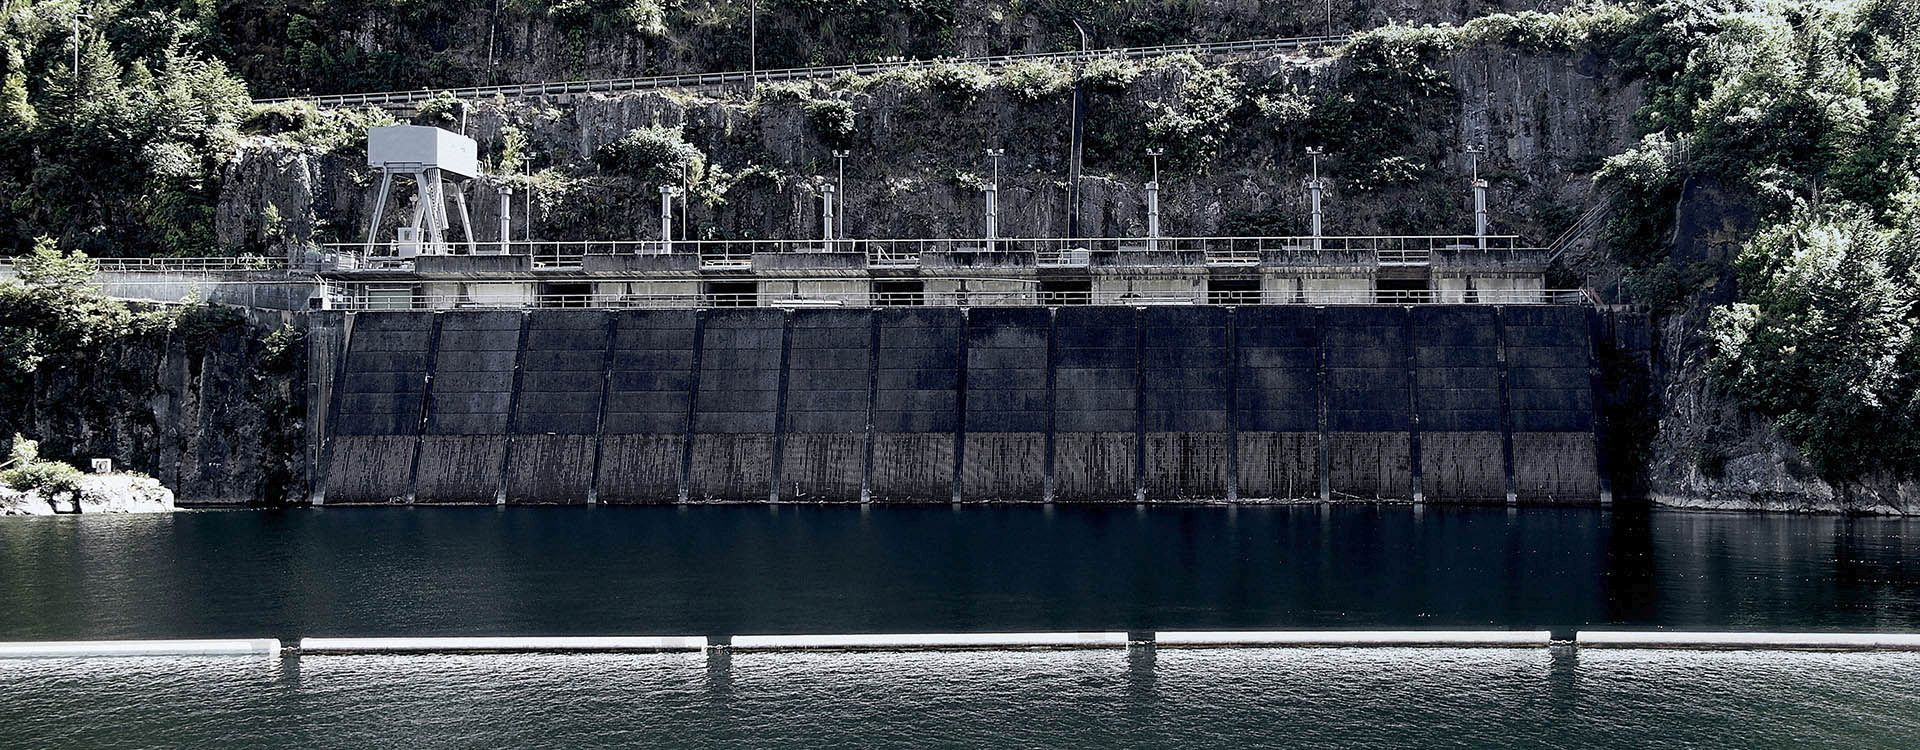 Manapouri Hydropower, New Zealand